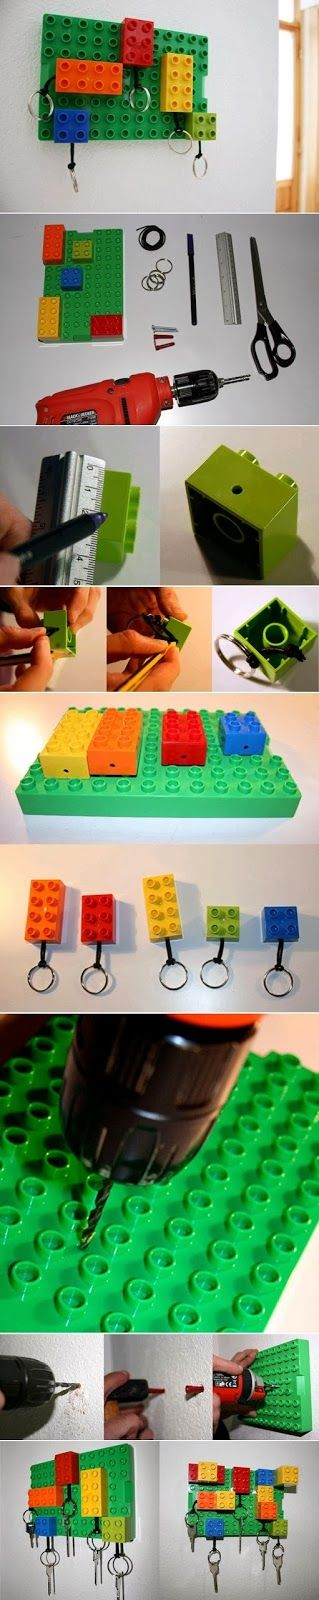 DIY Lego Key Hanger! This is so much fun and helps to easily identify keys!